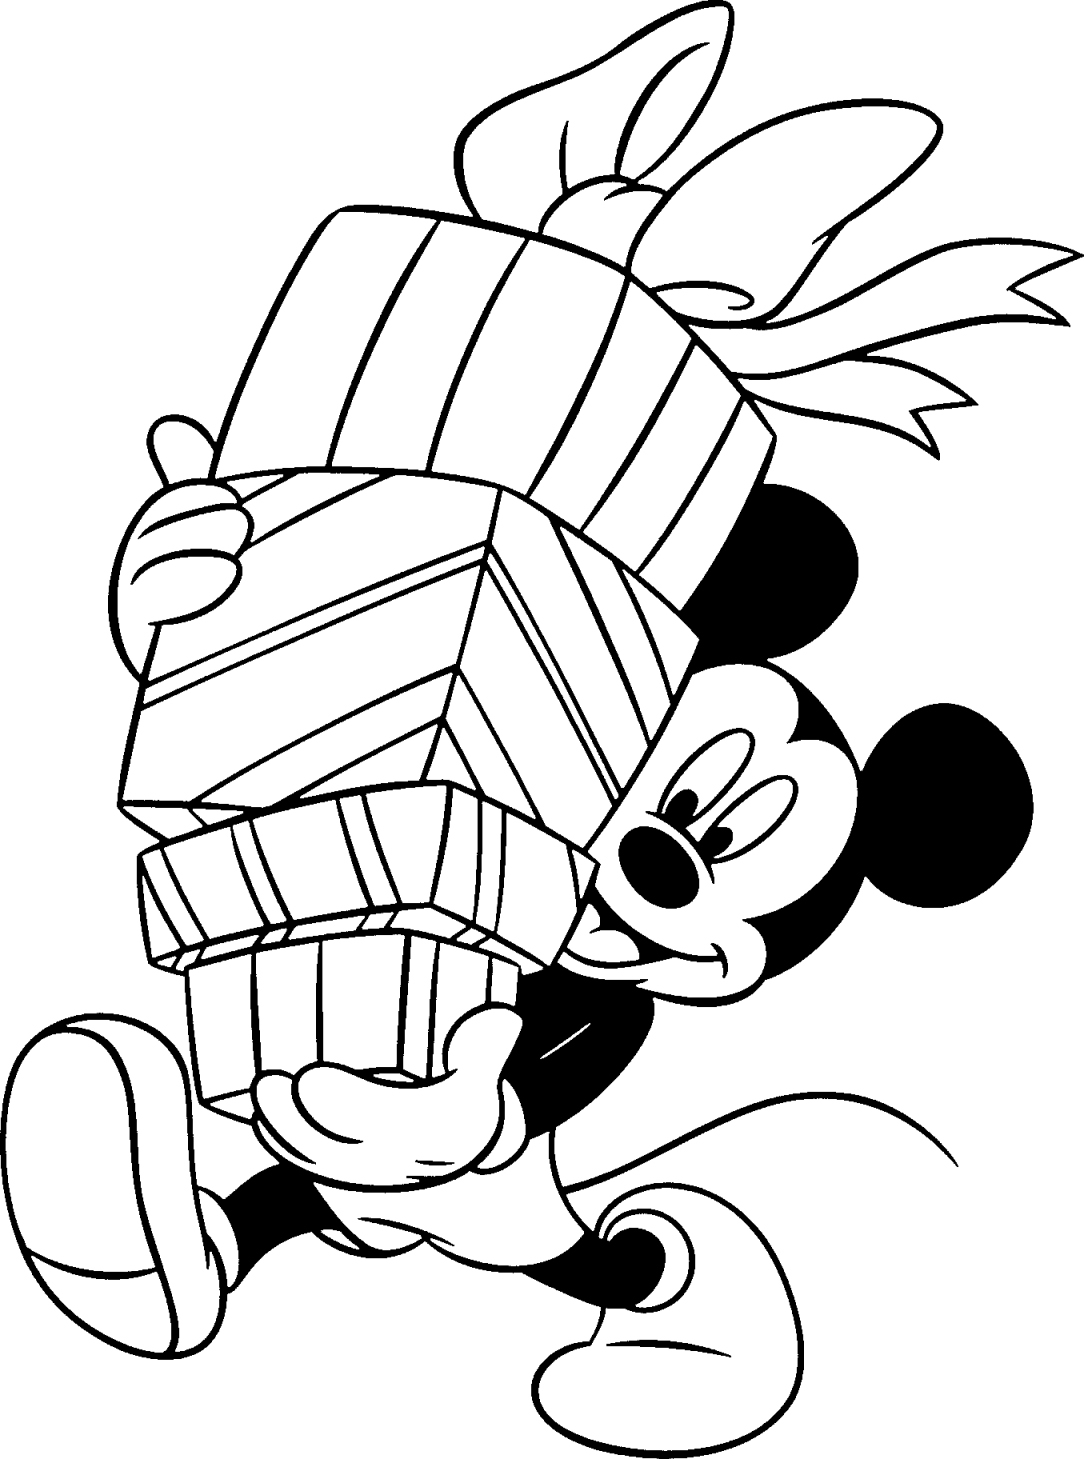 coloring pictures christmas coloring pages christmas disney gtgt disney coloring pages pictures coloring christmas